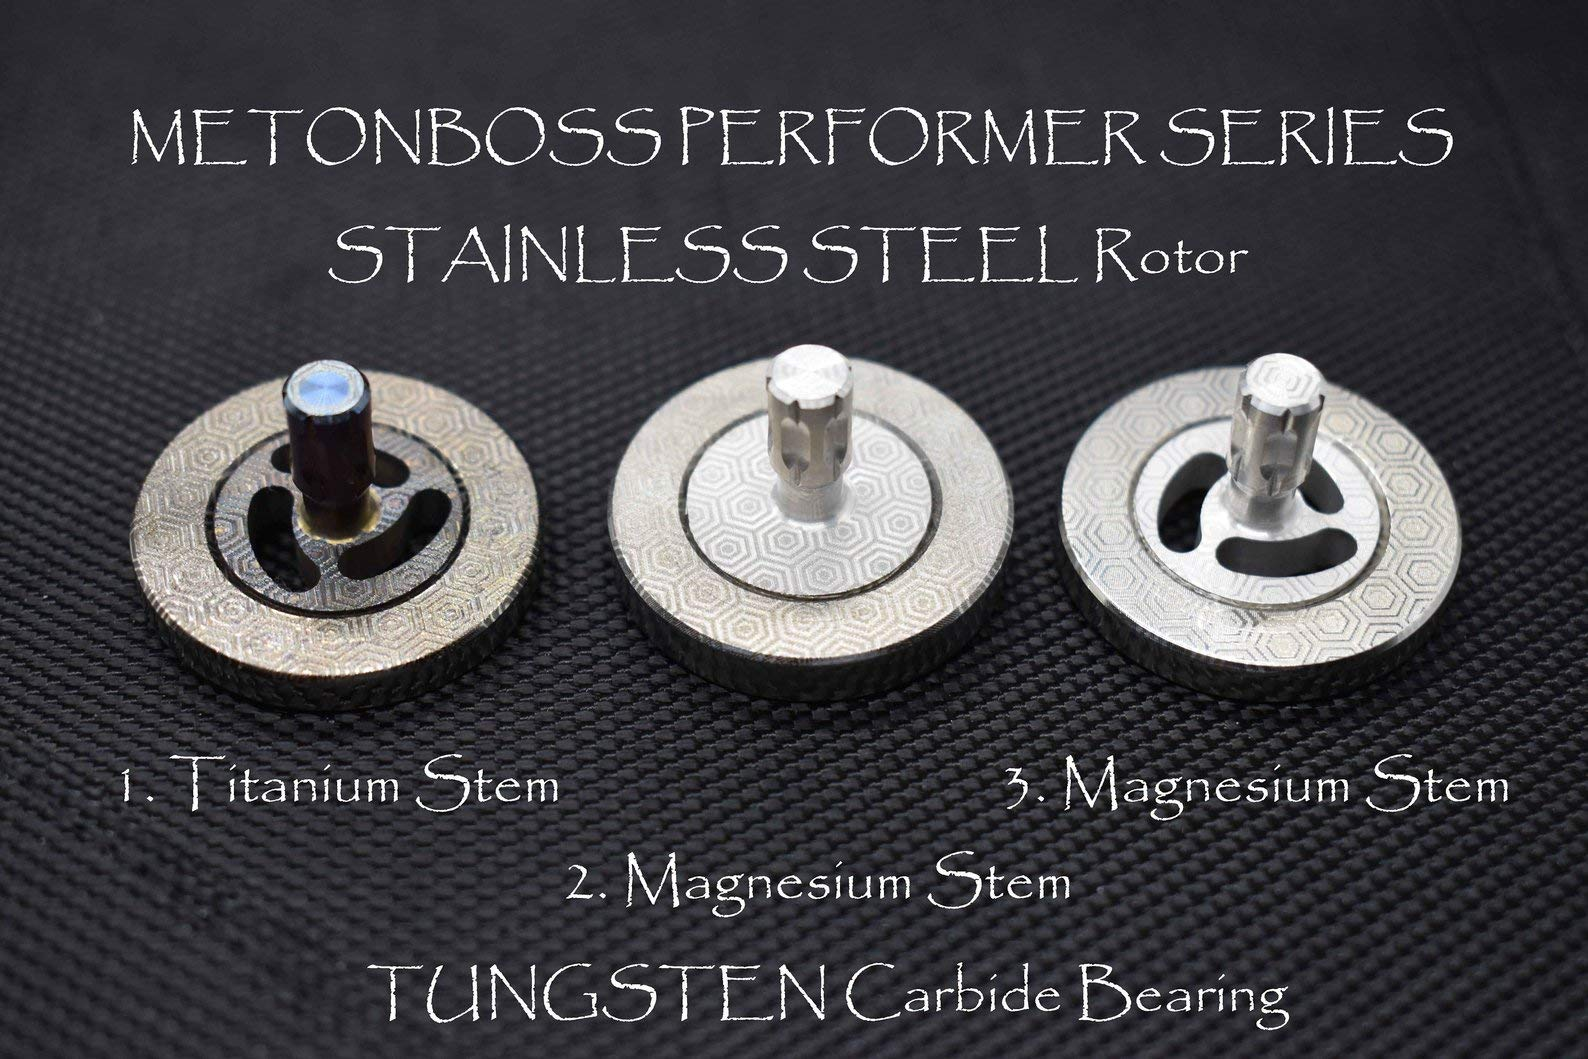 MetonBoss Stainless Steel Performer Spinning Top with Tungsten Carbide Bearing Ball & Precision Milled Titanium stem | Gift for him EDC (1. Stainless Steel - Magnesium Stem)